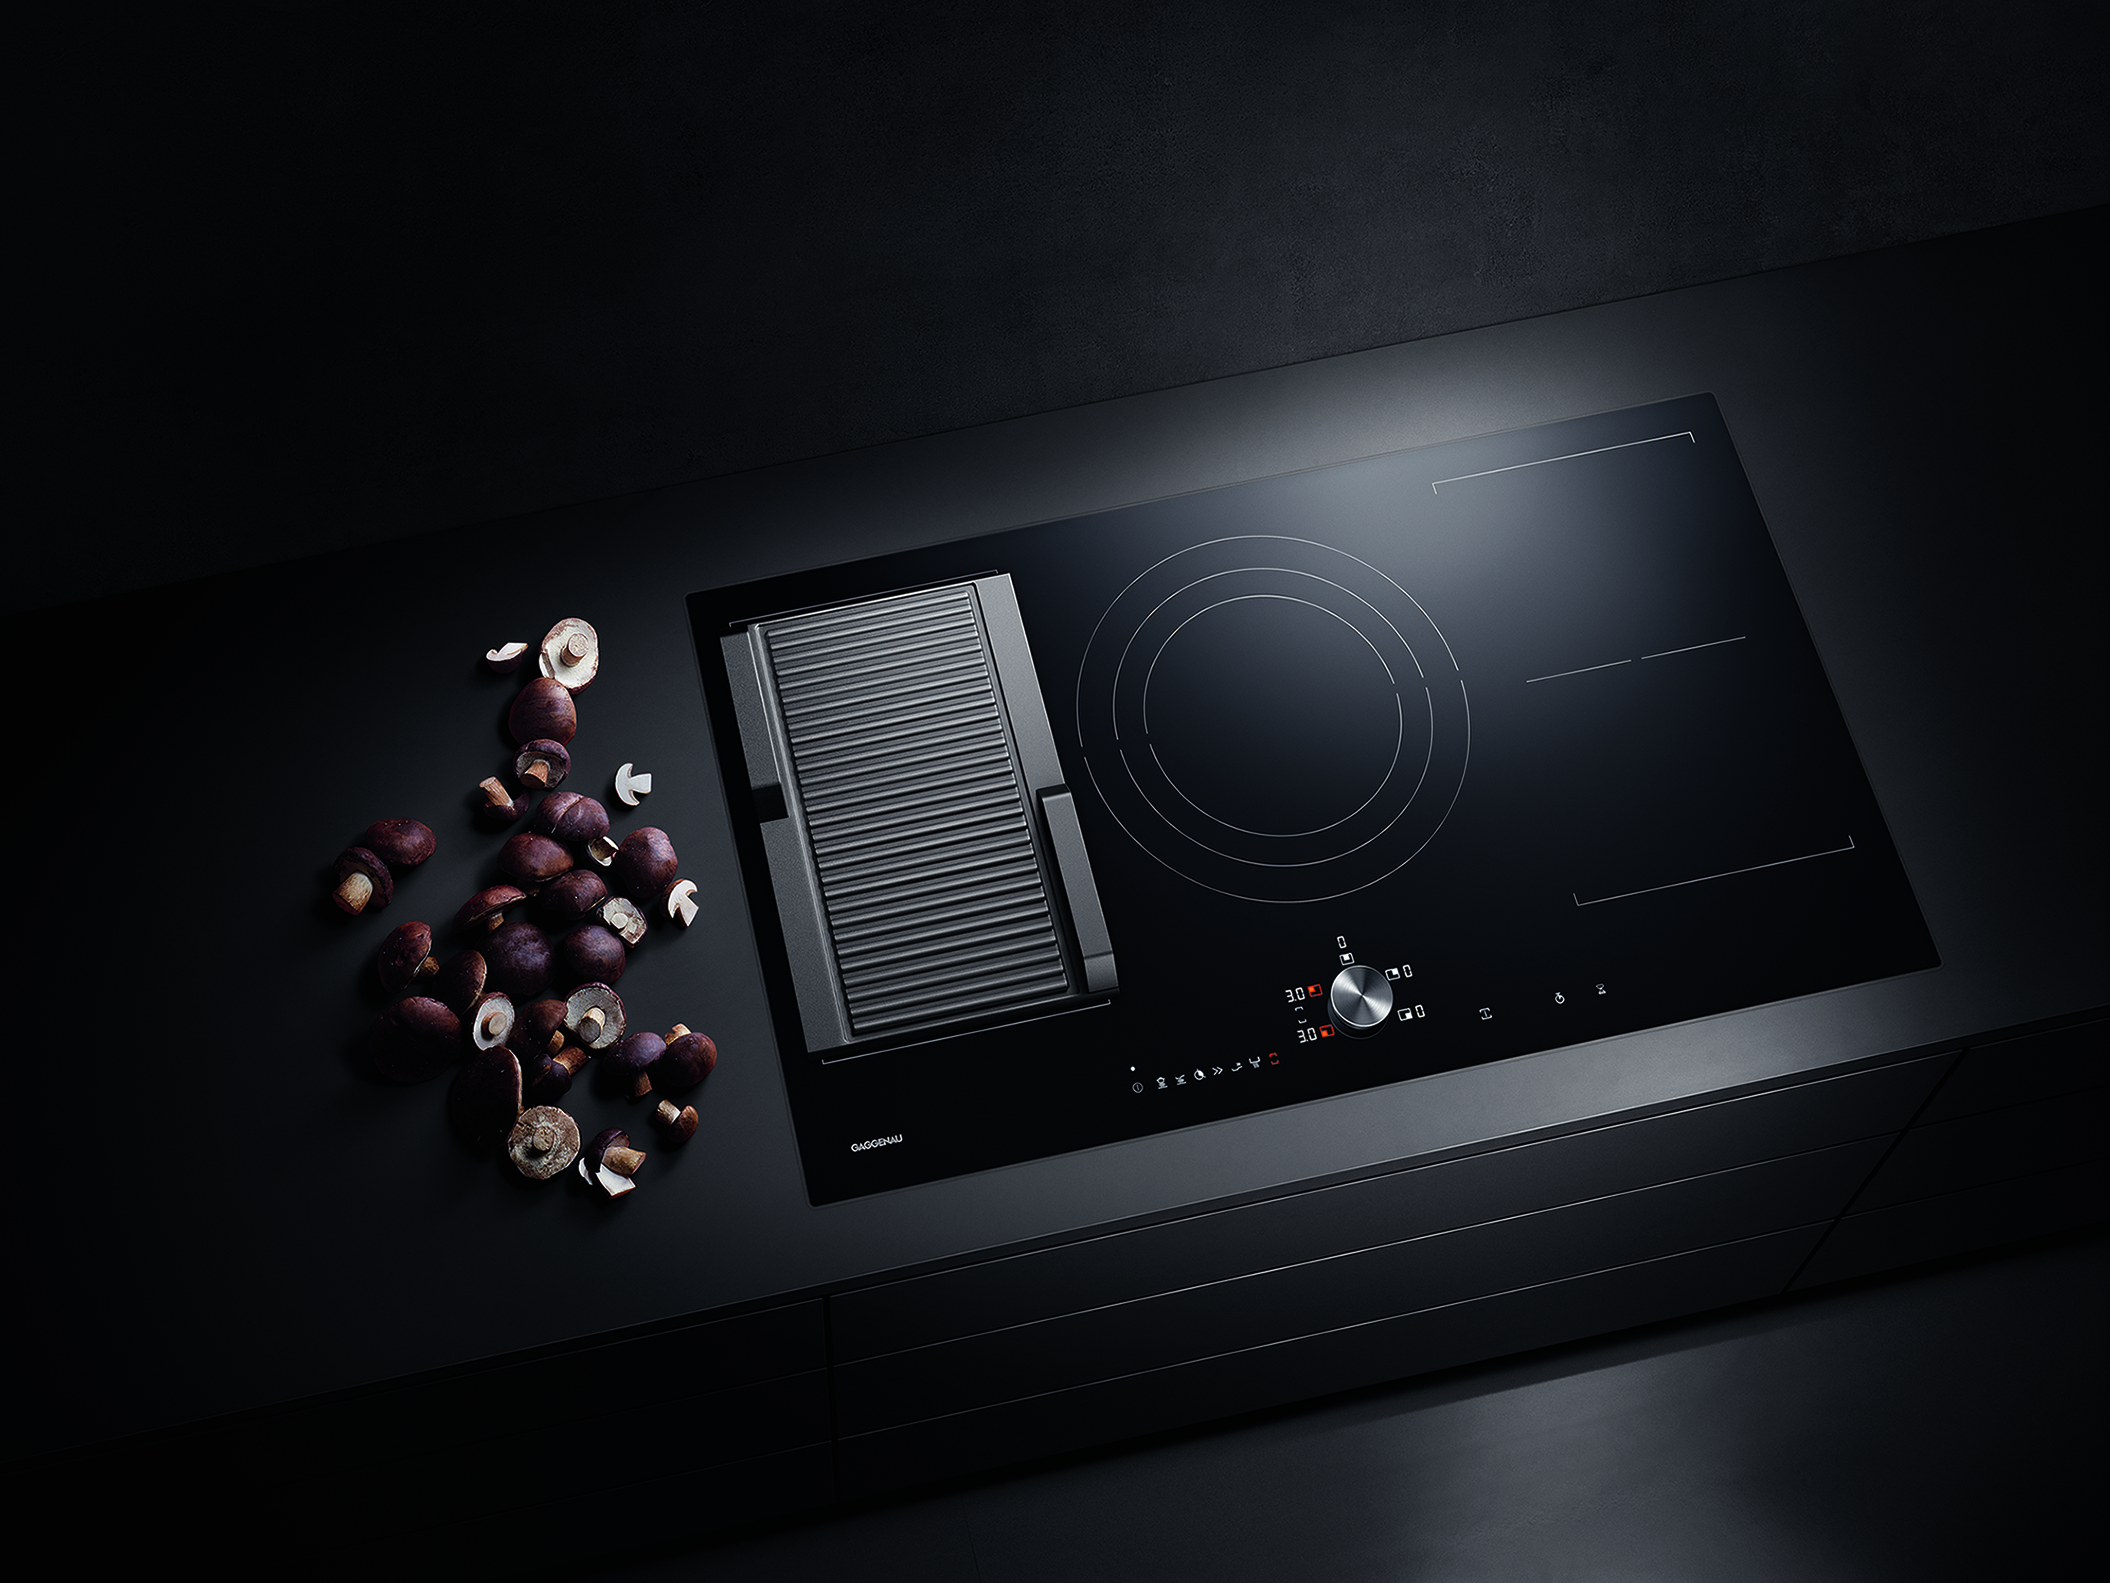 1442218437_01_Gaggenau_Flex_induction_cooktops